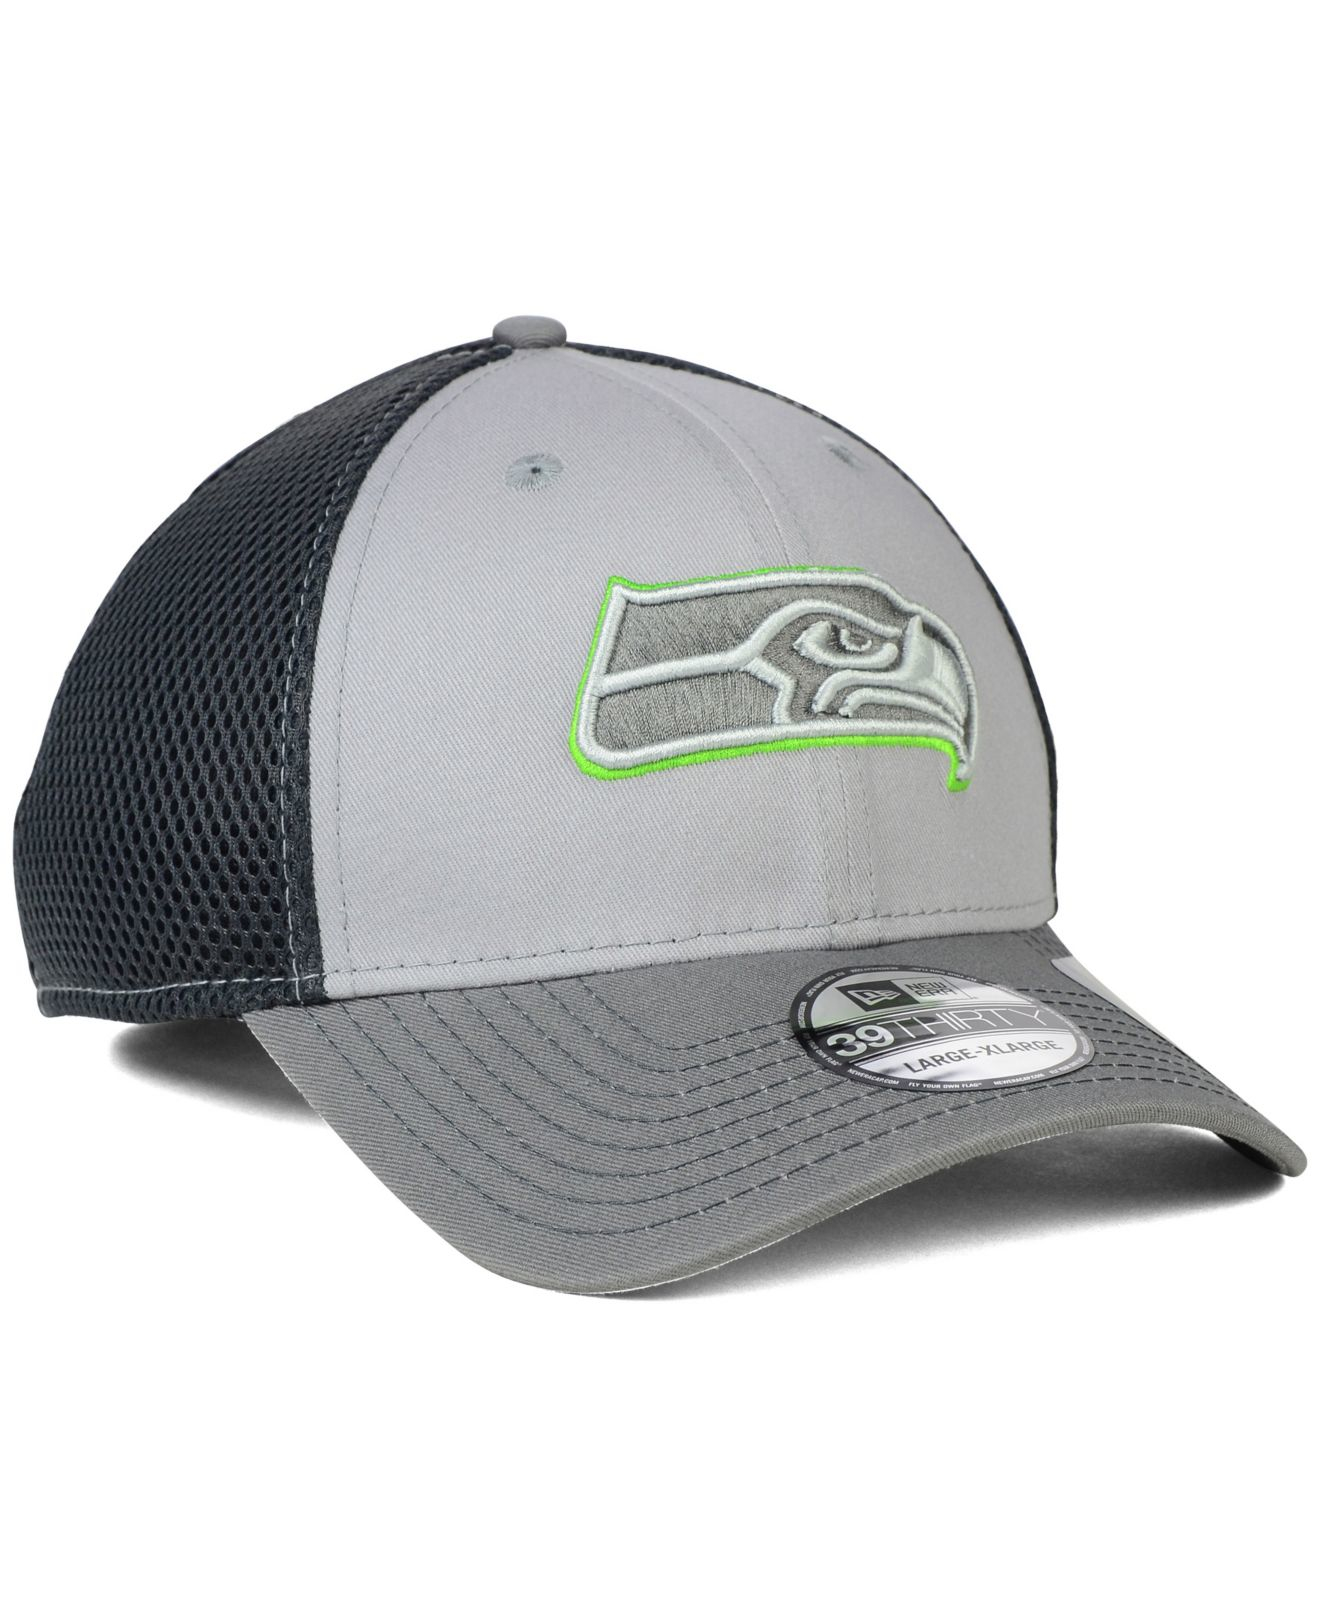 ... low cost lyst ktz seattle seahawks neo flex 39thirty cap in gray for men  e9e39 9f14e 79646780d25c